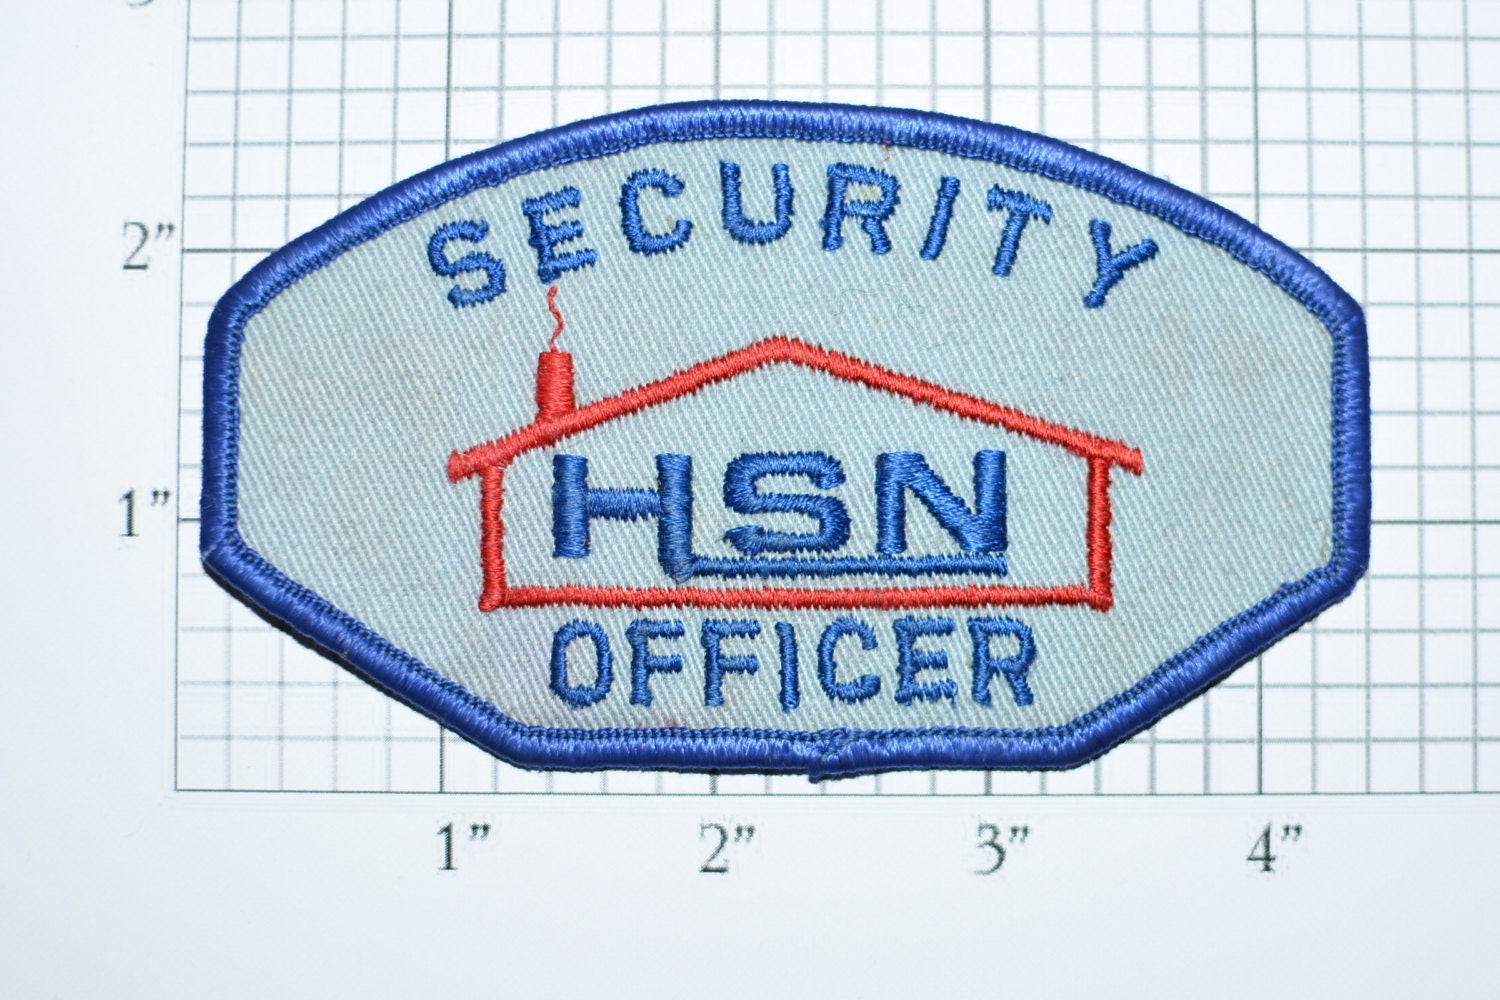 2777 network security officer